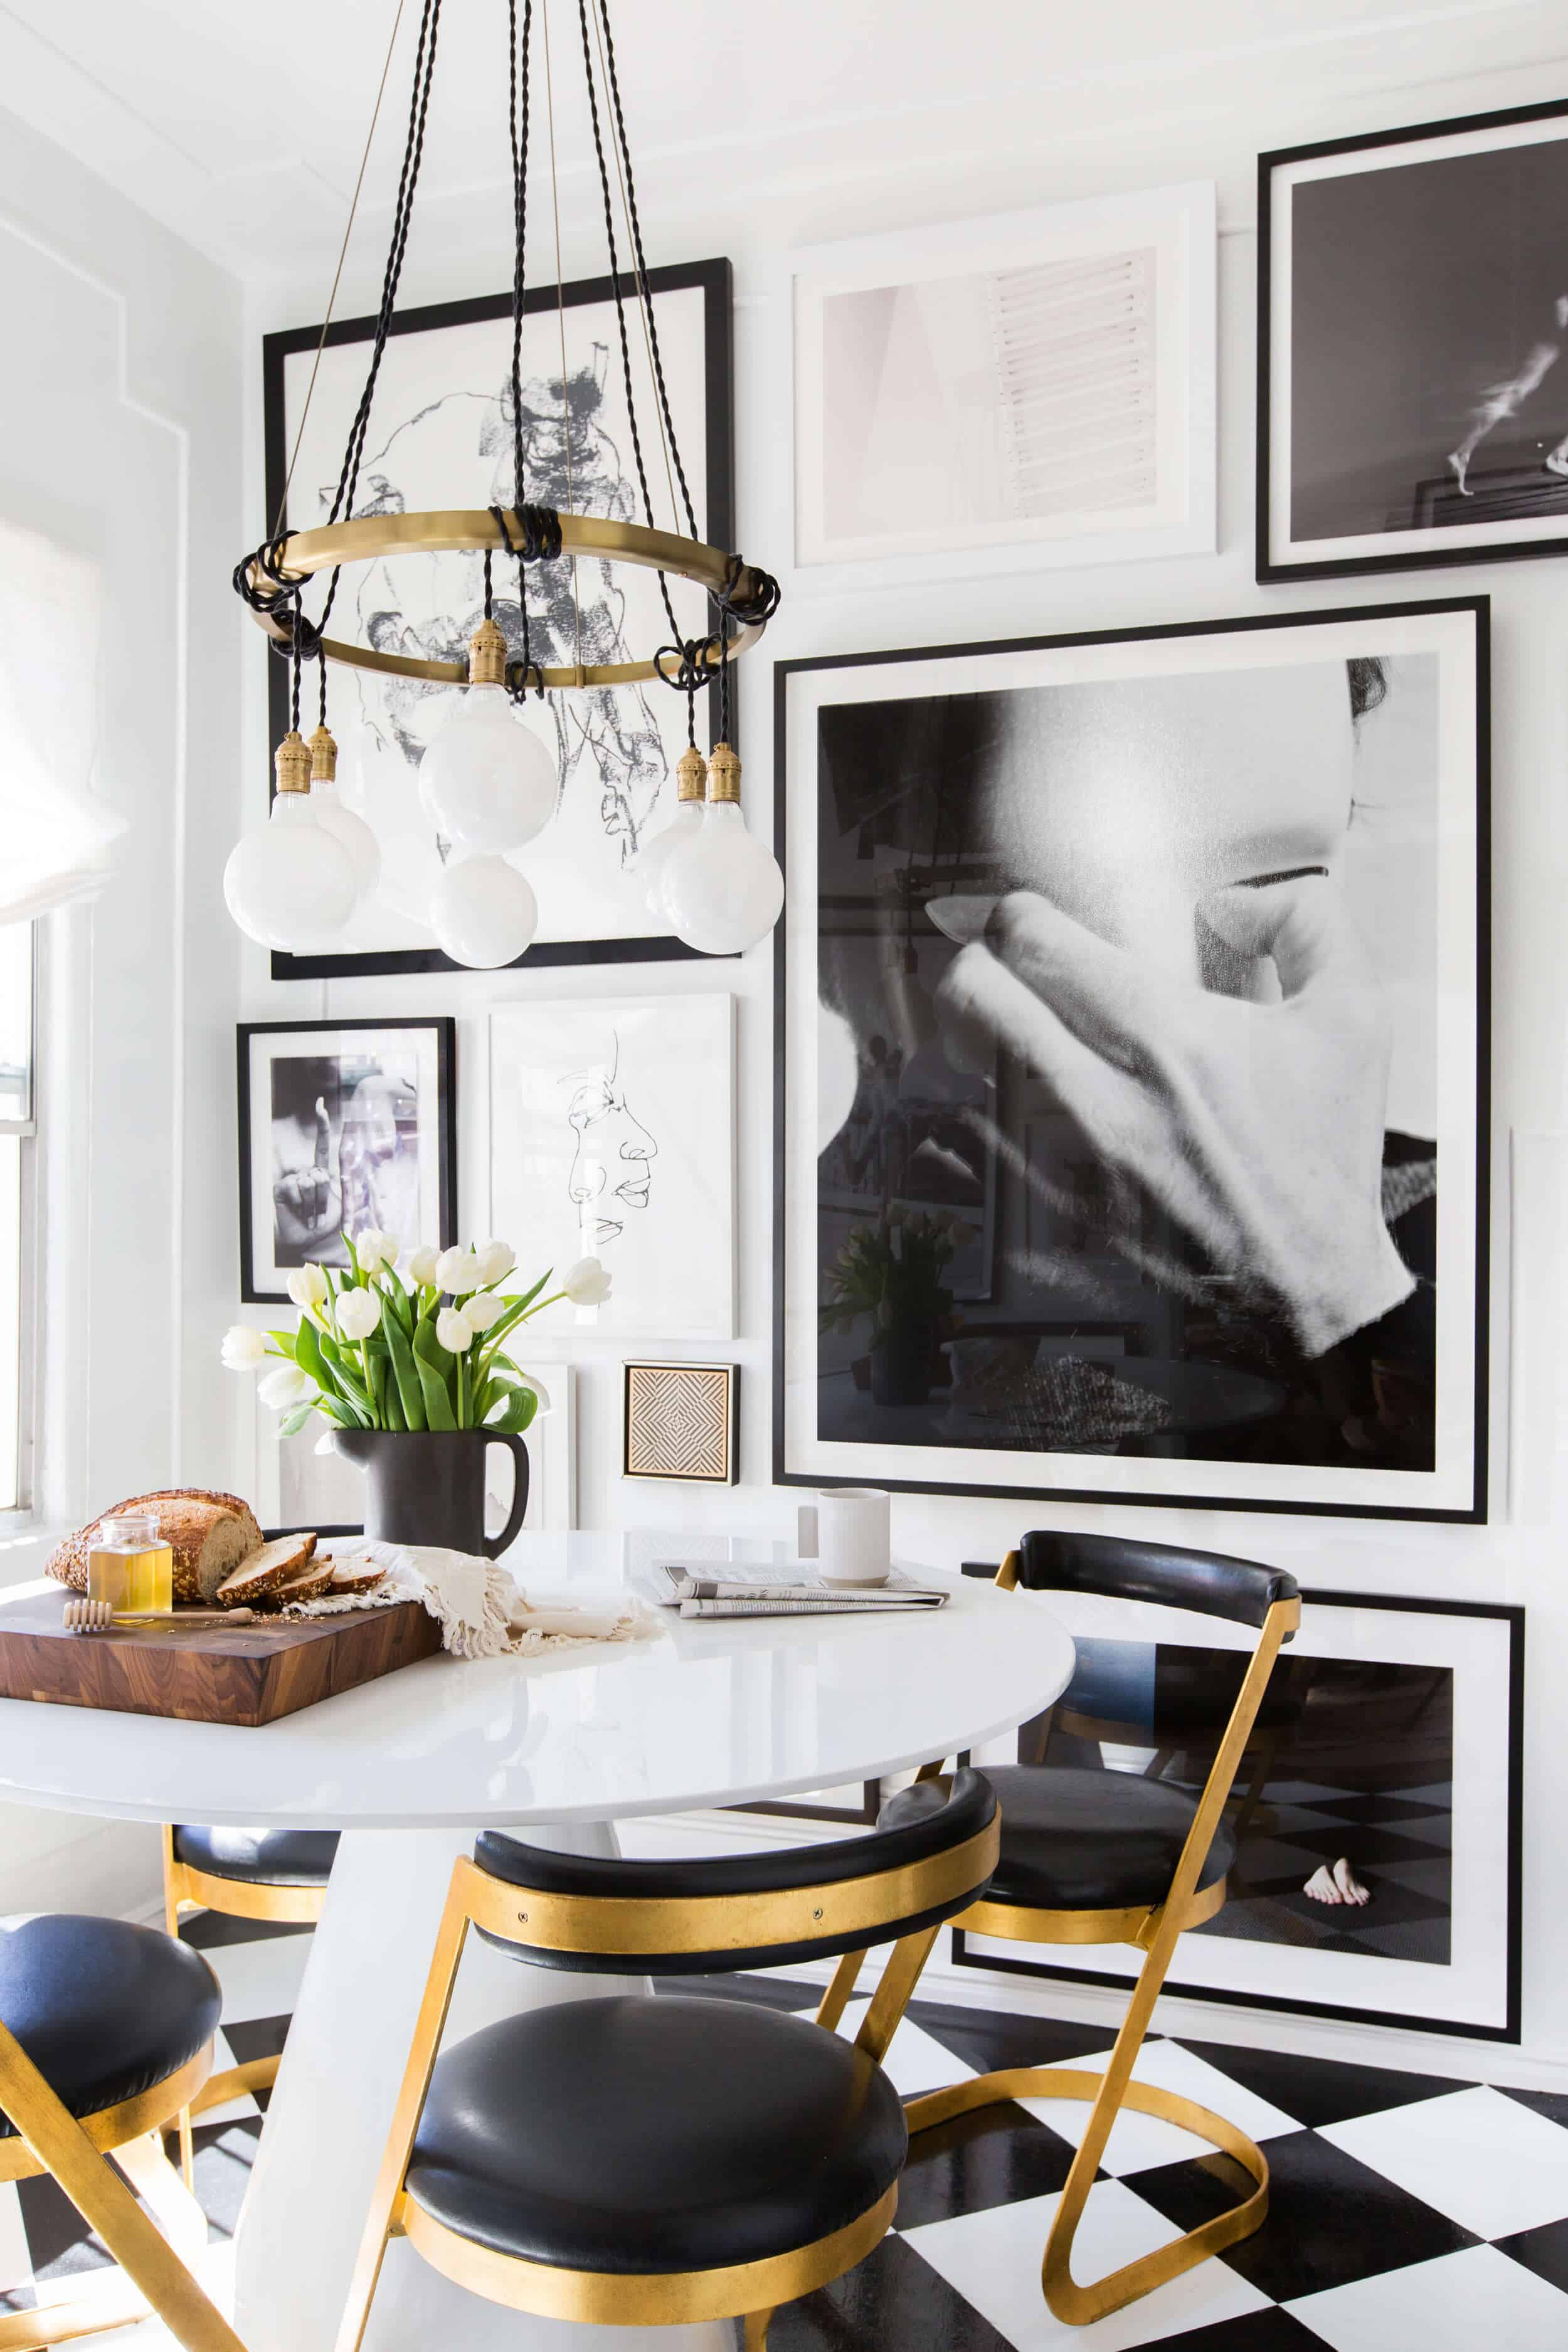 Brady-Tolbert_Emily-Henderson_Black-and-White-Kitchen_Vintage_Apartment-Refresh_Wood_Brass_Checkered-Floor_Copper-Pots_Eclectic_Glam_Modern_Traditional_5